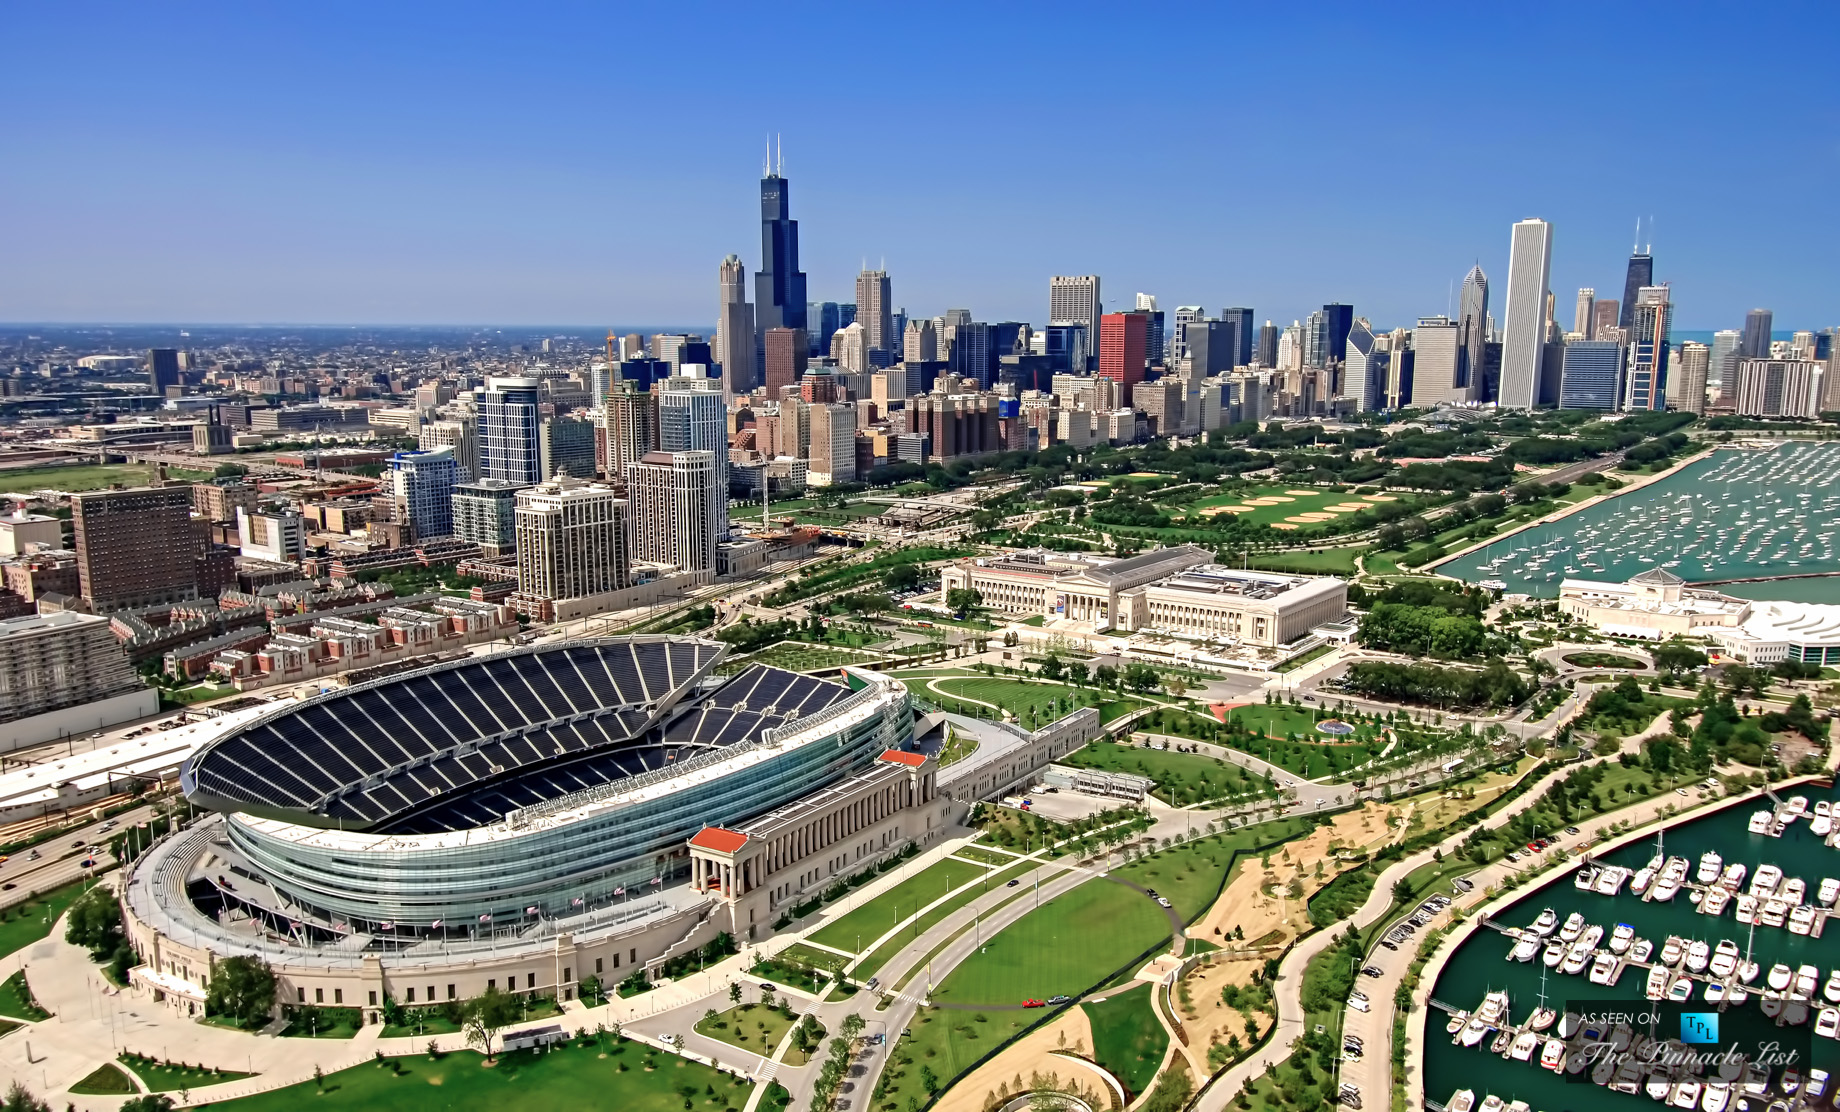 Soldier Field - Field Museum - Shedd Aquarium - Windy City Living - Top 5 Reasons to Raise a Family in Chicago